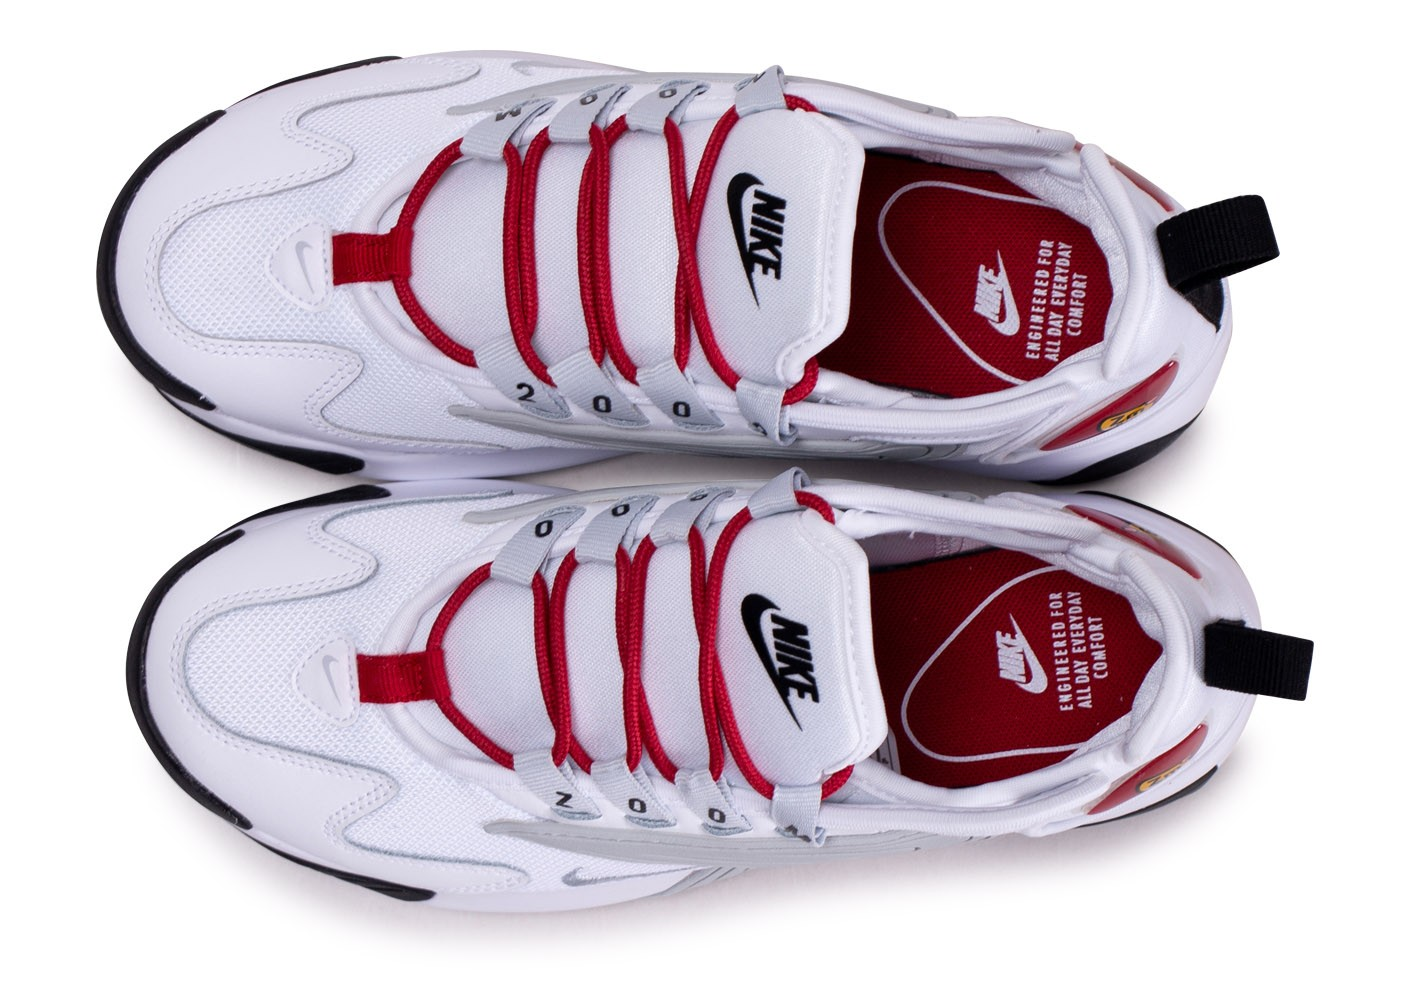 Nike Zoom 2K blanche rouge et grise femme - Chaussures Baskets ...